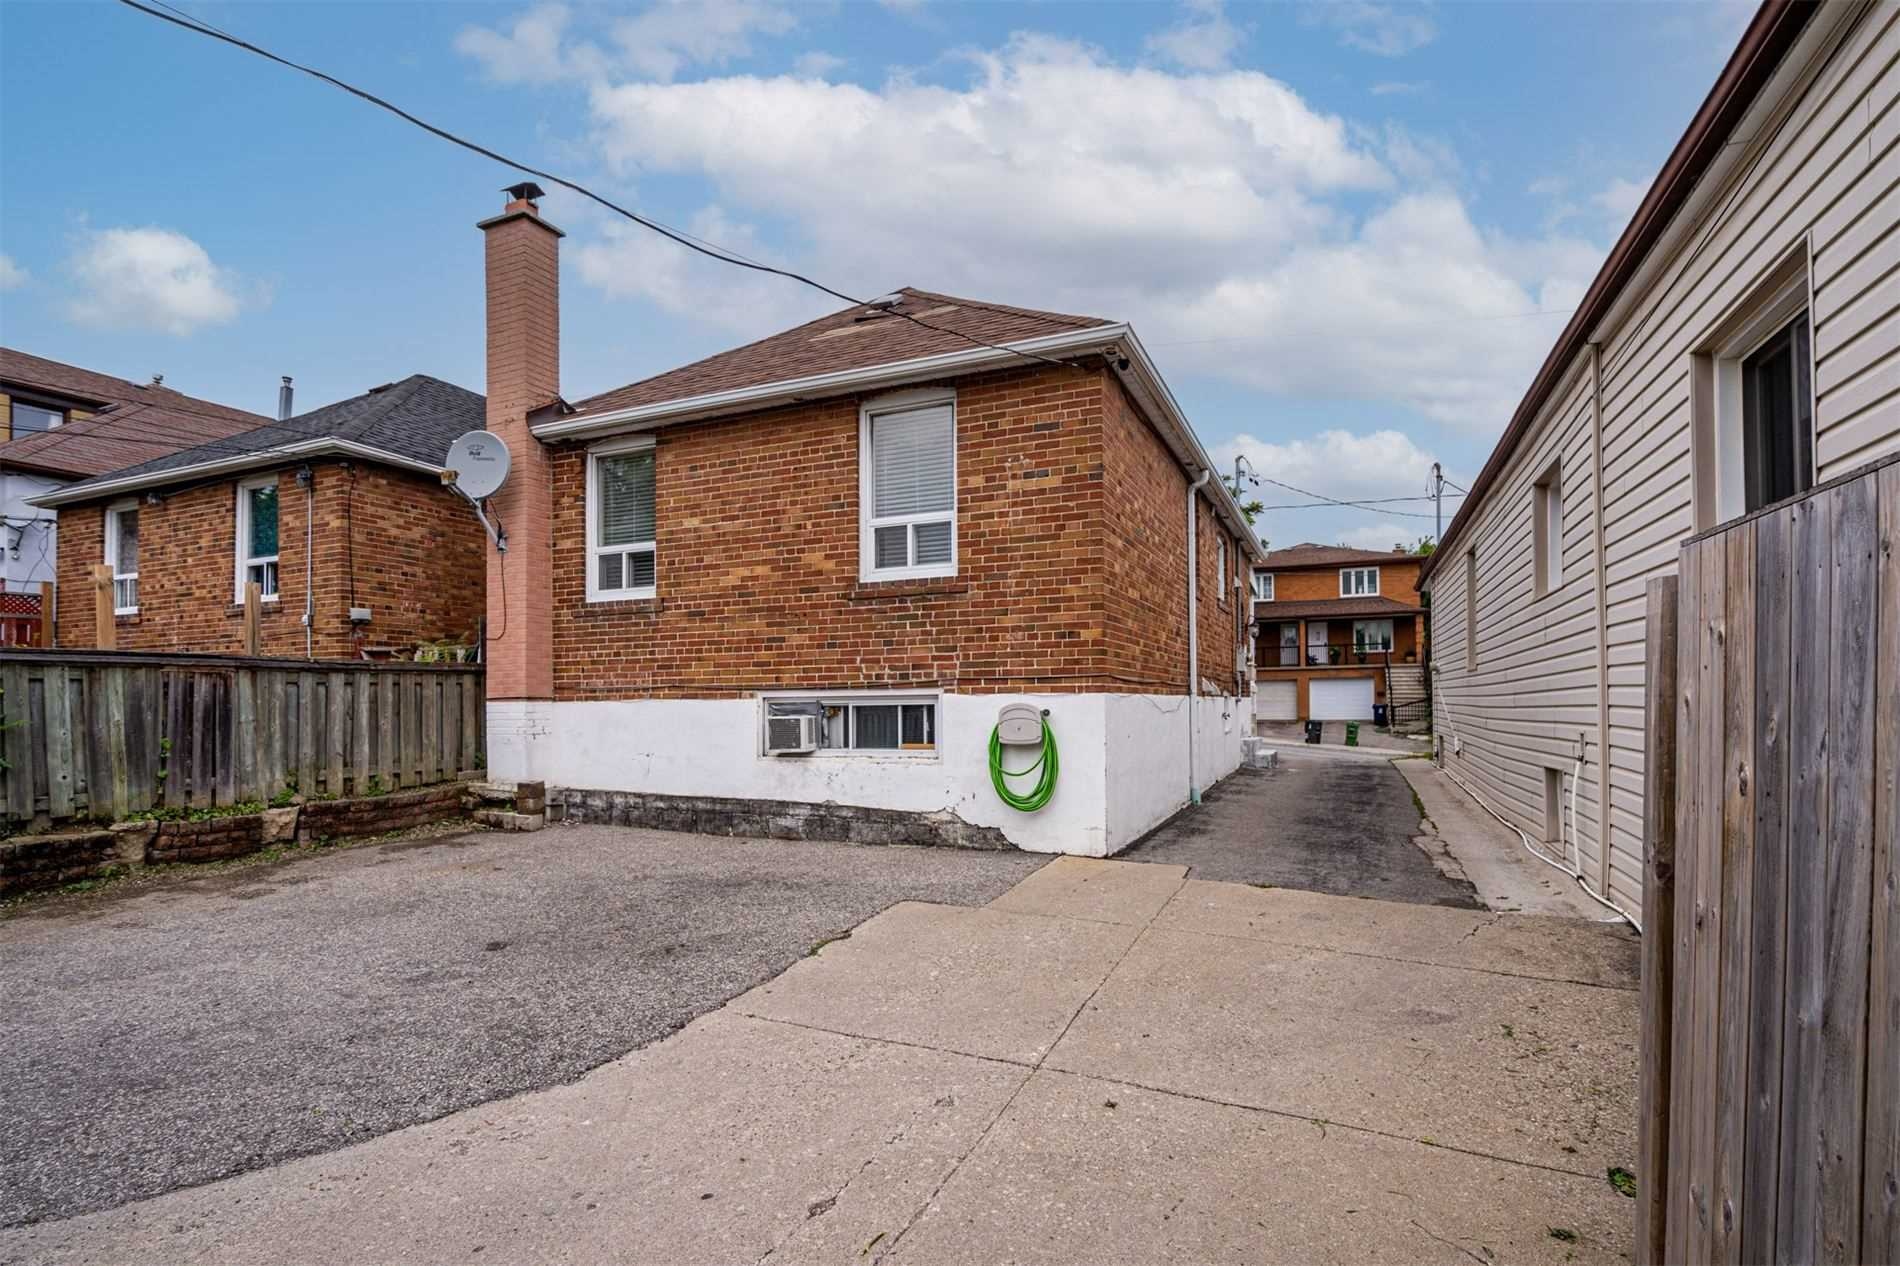 554 Caledonia Rd - Caledonia-Fairbank Detached for sale, 2 Bedrooms (W5305900) - #35